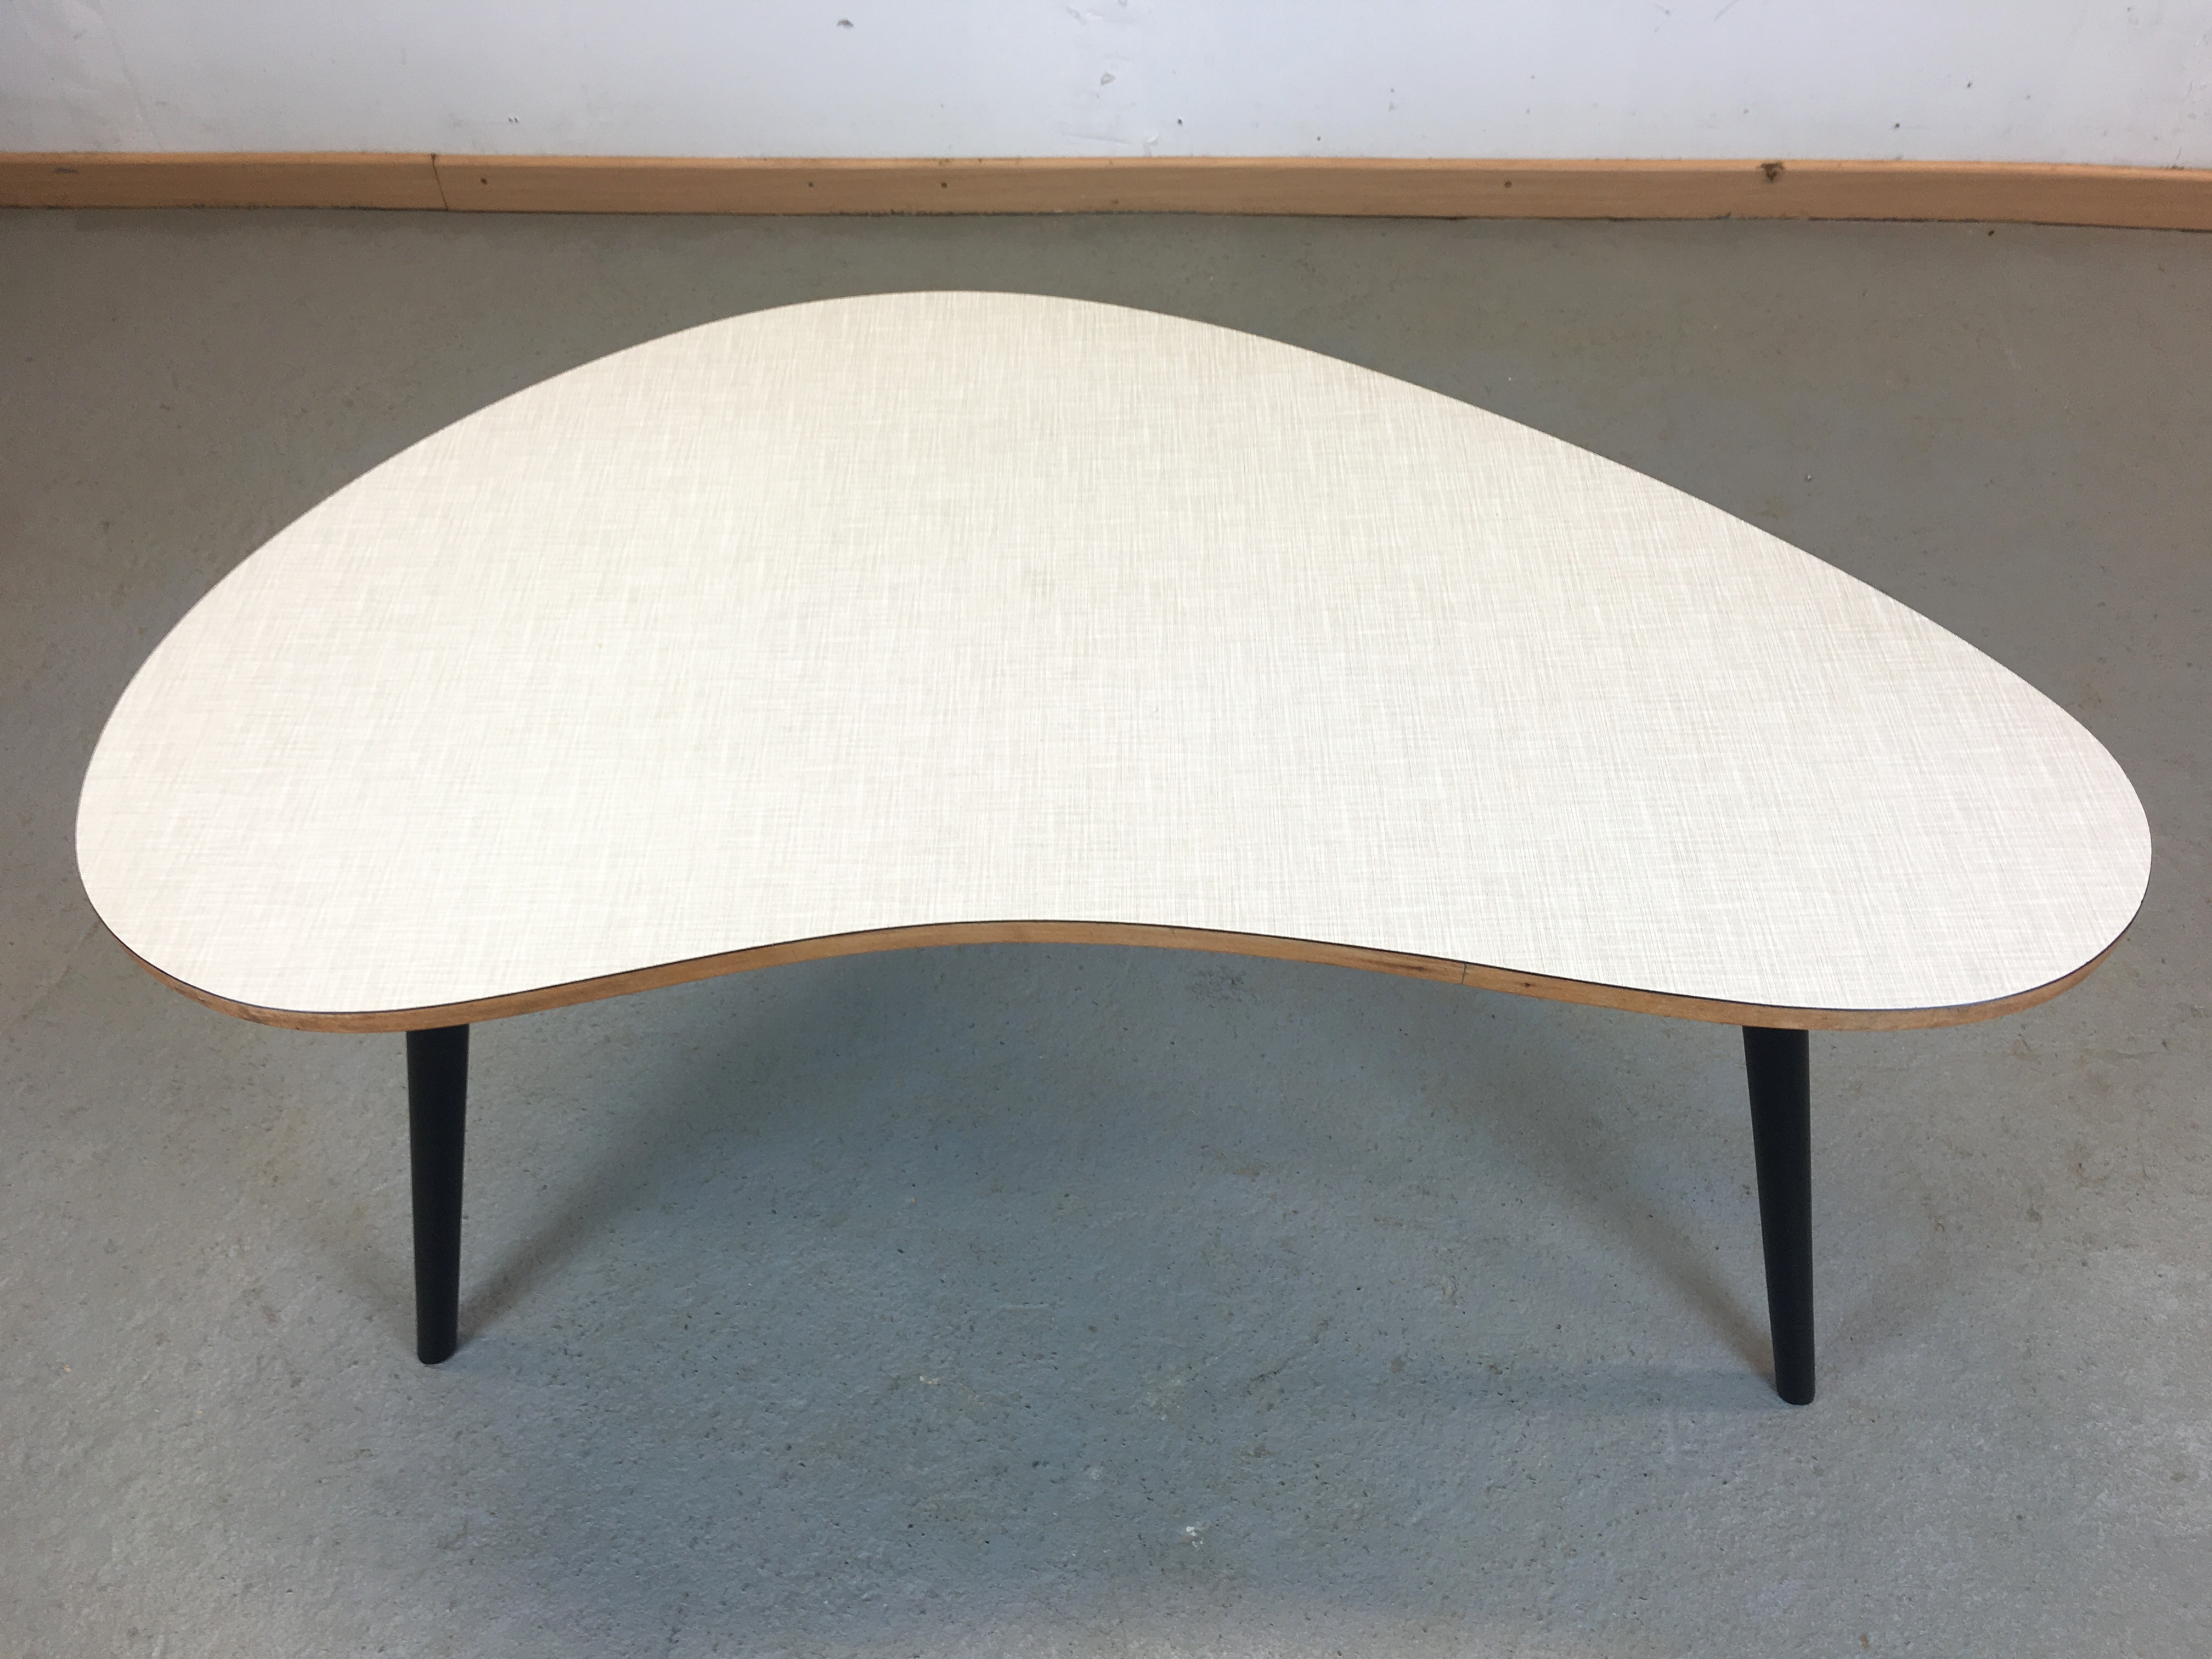 Table Basse Forme Libre Thonet Annee 50